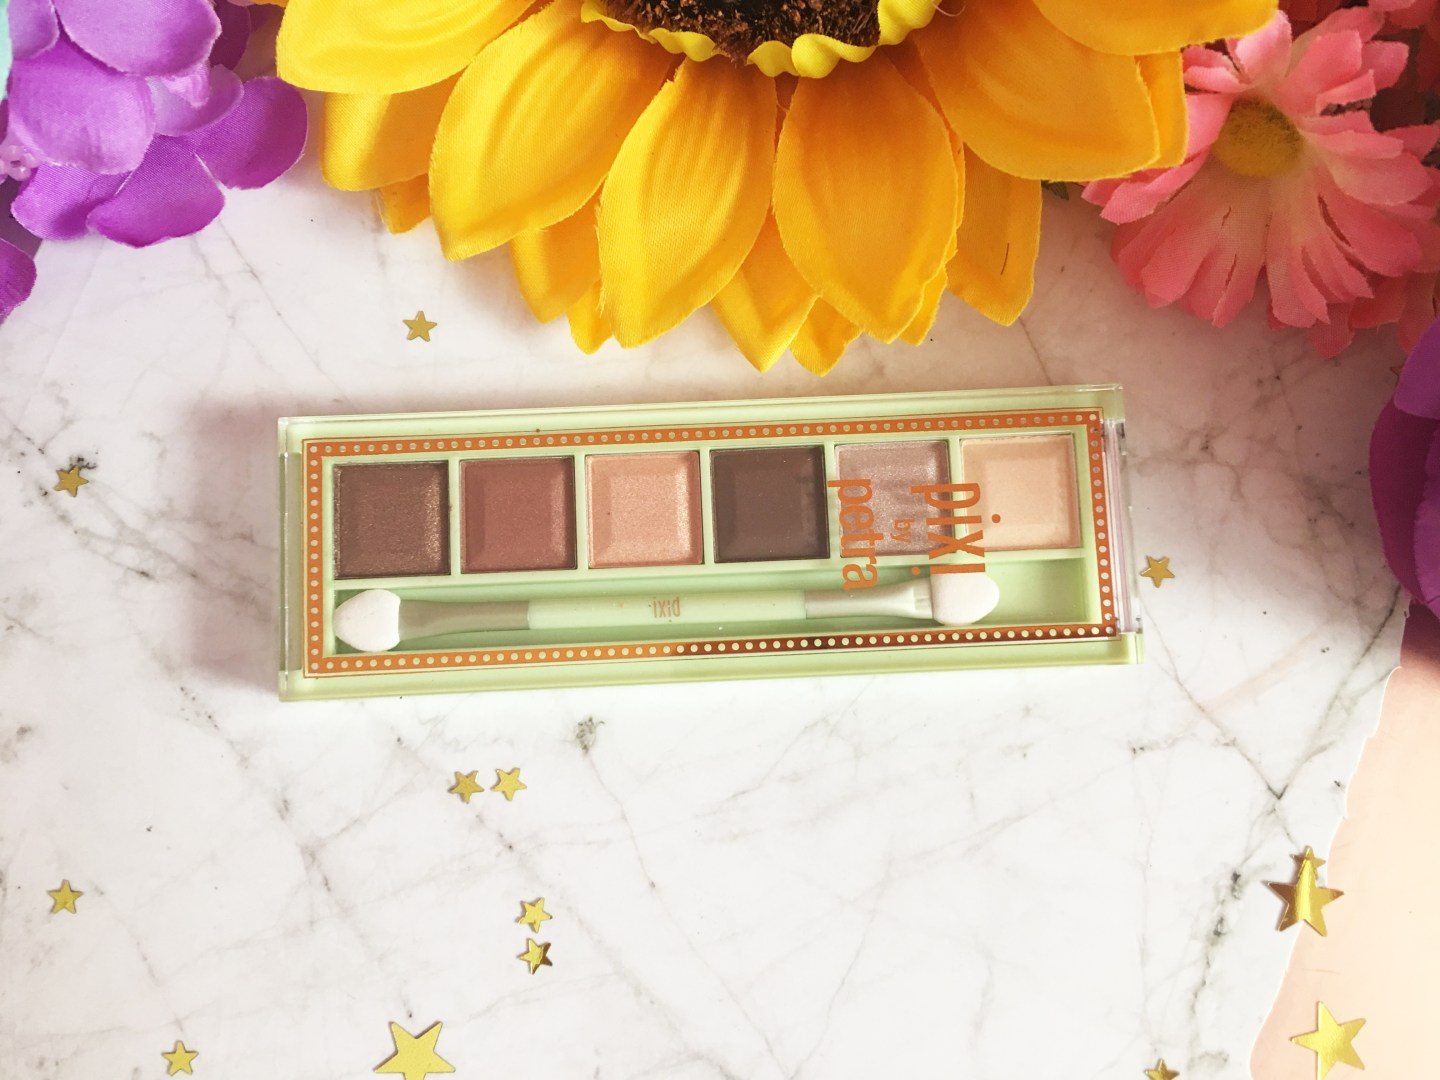 ASOS Pixi Copper Peach Palette Musings of a Makeup Junkie (3)